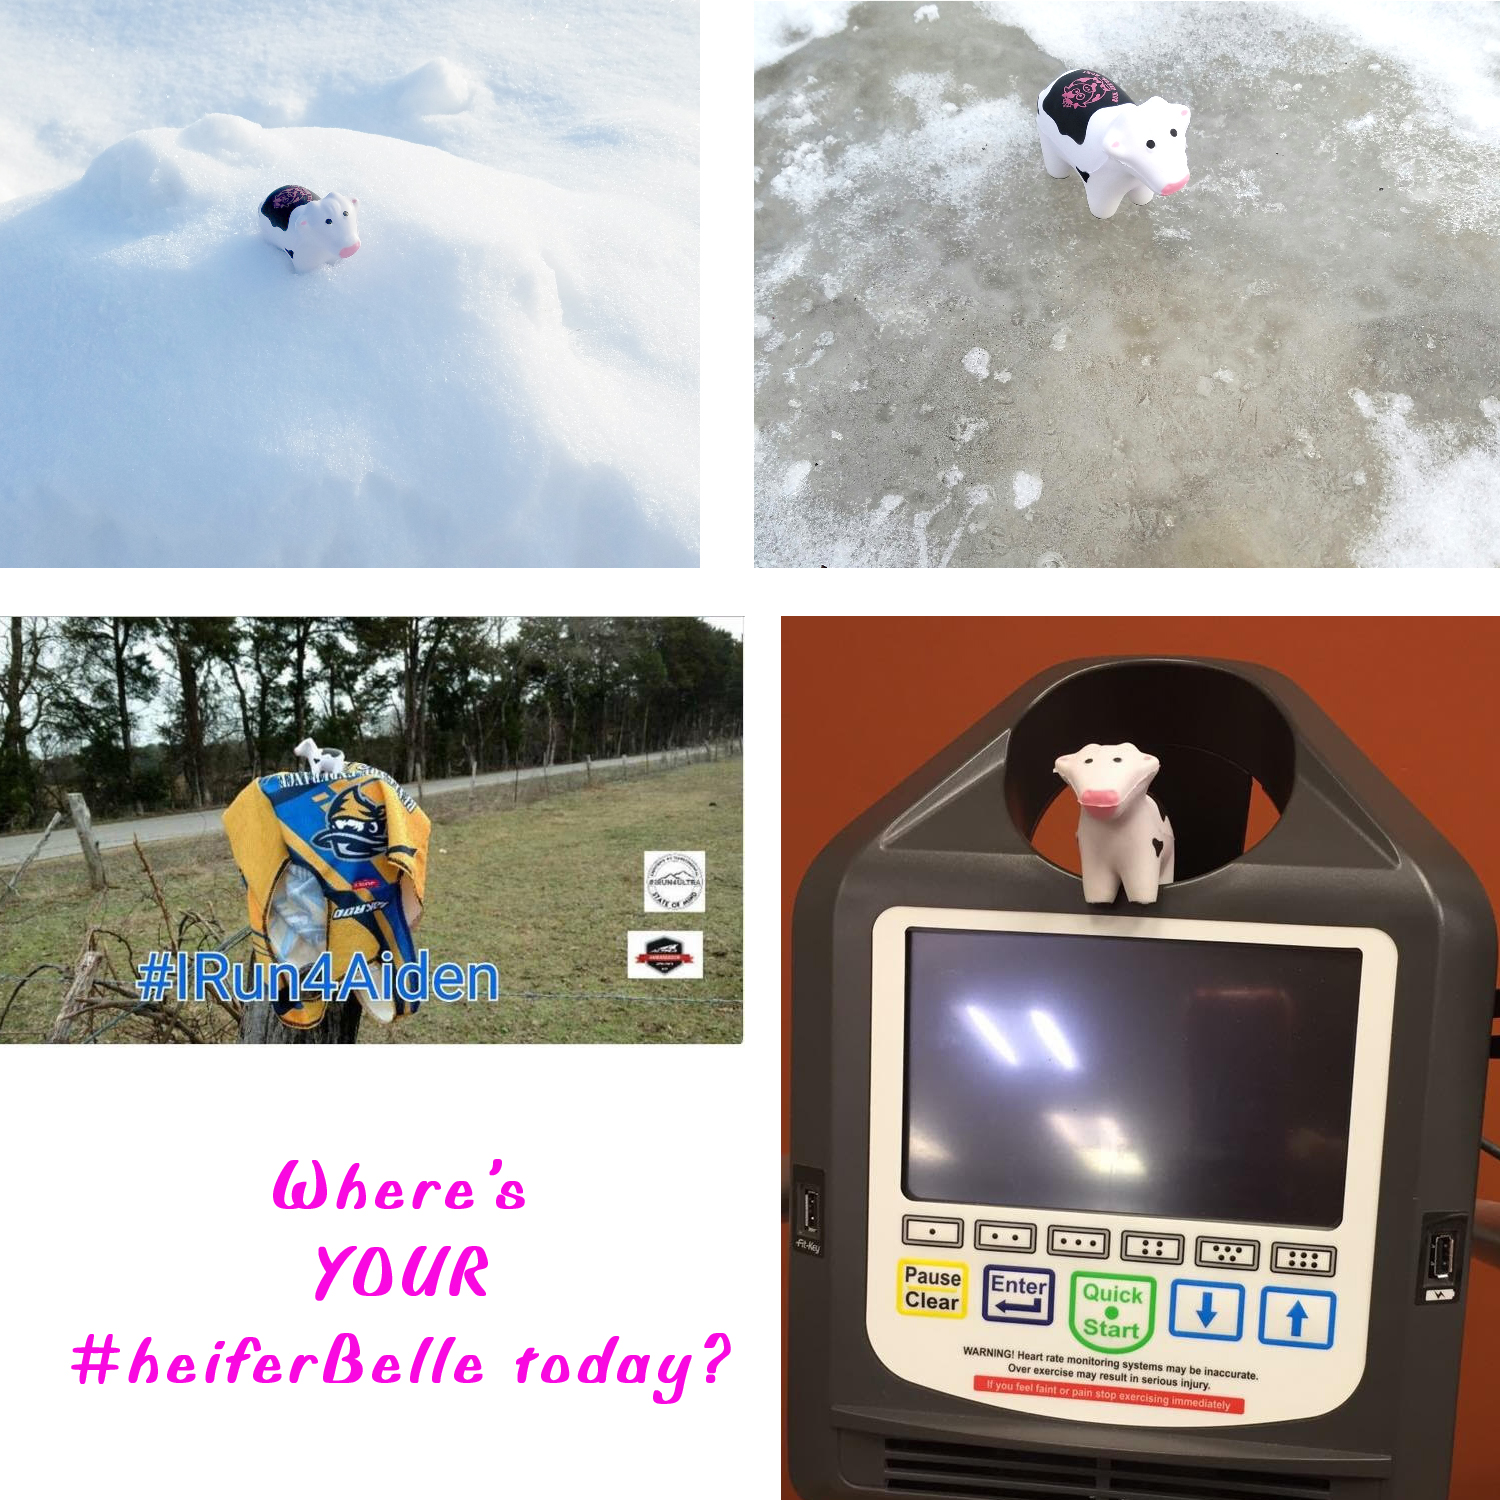 From ice to warm weather and inside t the gym, #heiferBelle is sure getting around!